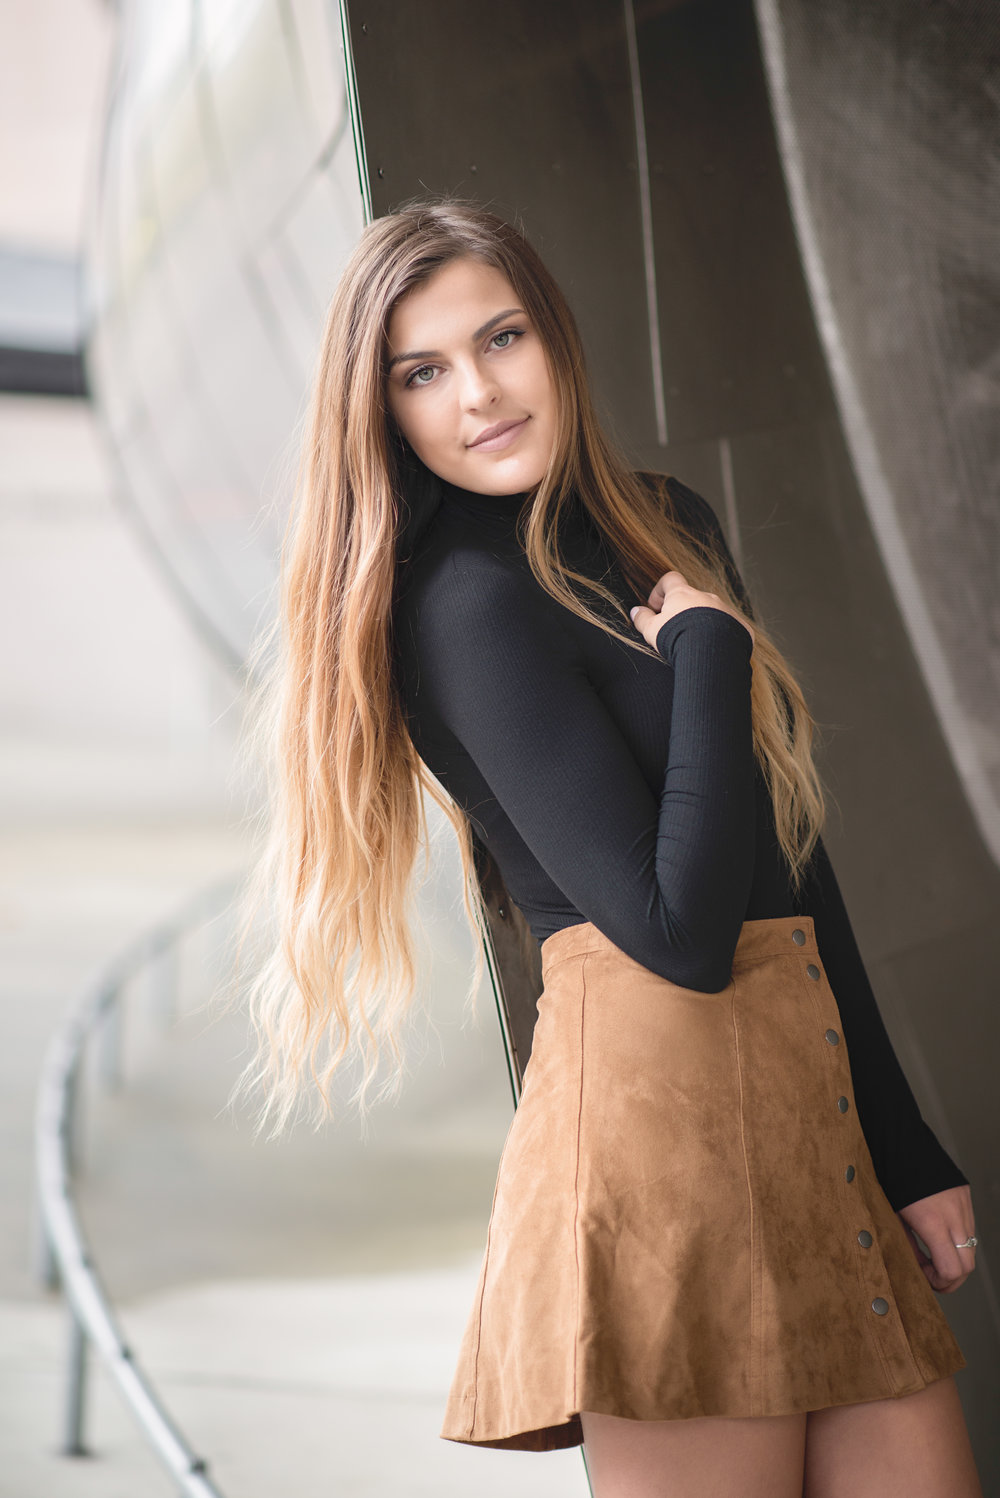 MaryVance - senior - girl - portrait - sammamish - washington - photographer _45_DSC_9977.jpg